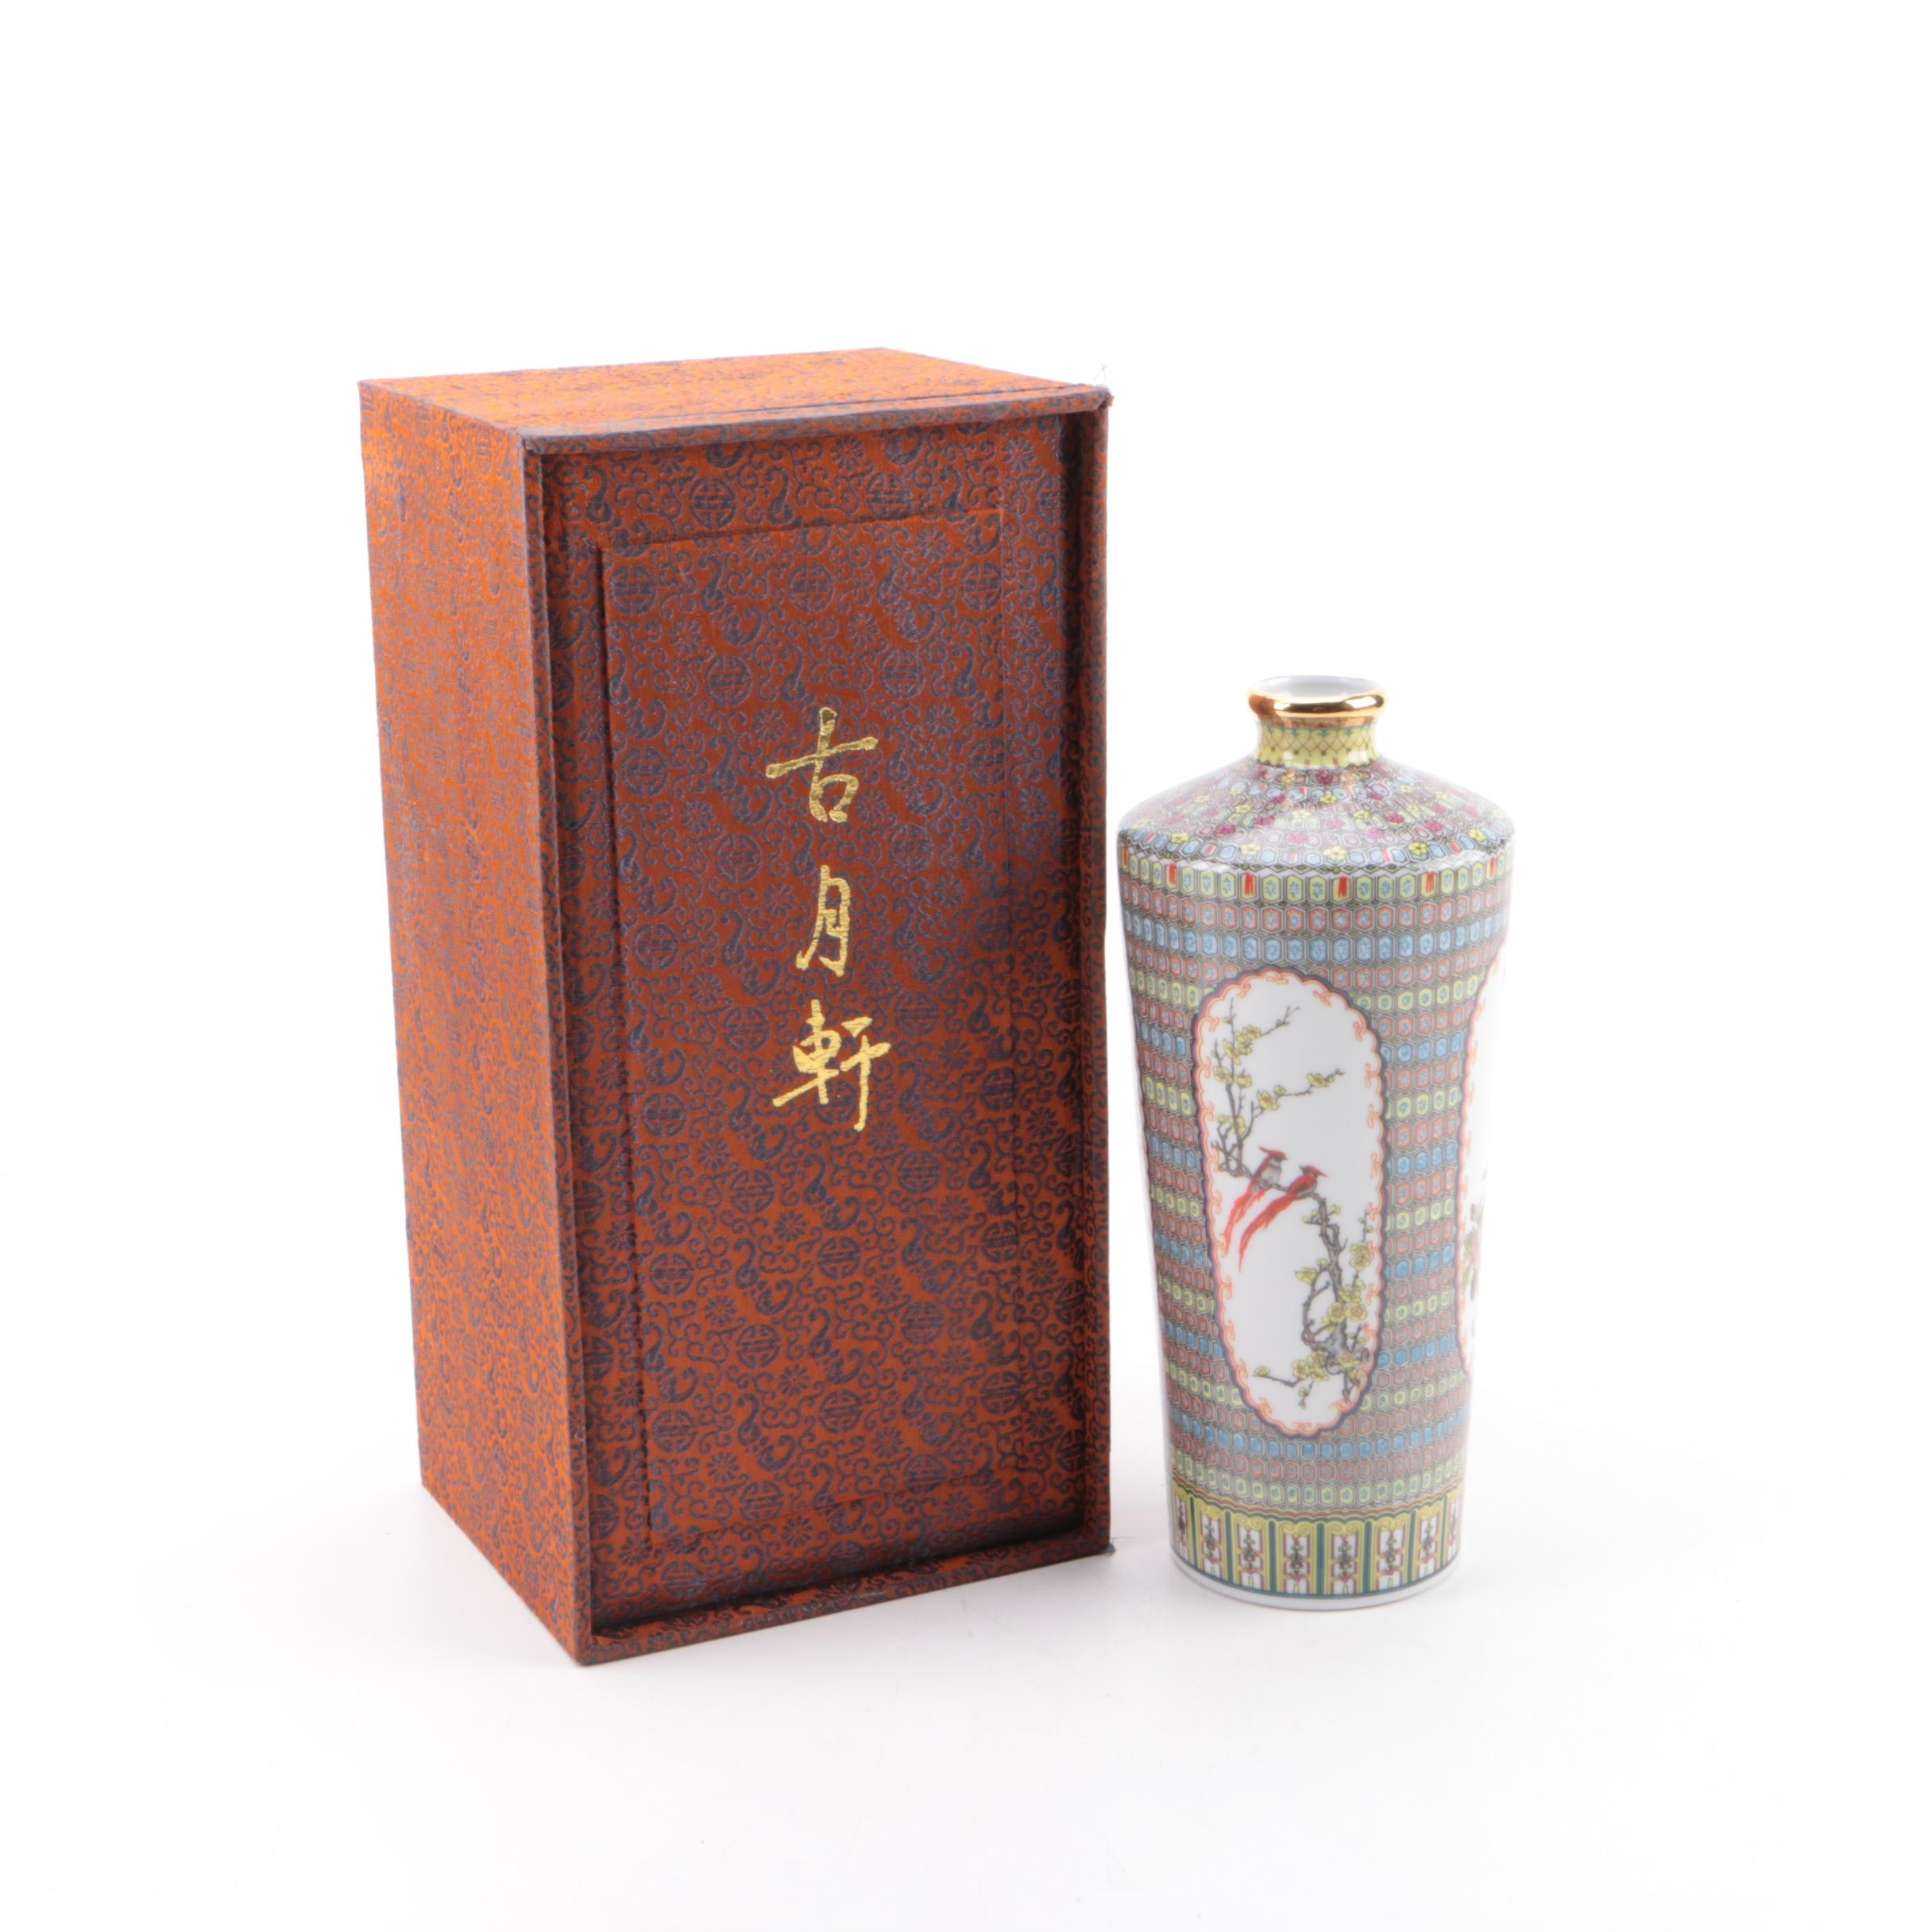 Chinese Porcelain Bud Vase and Decorative Box